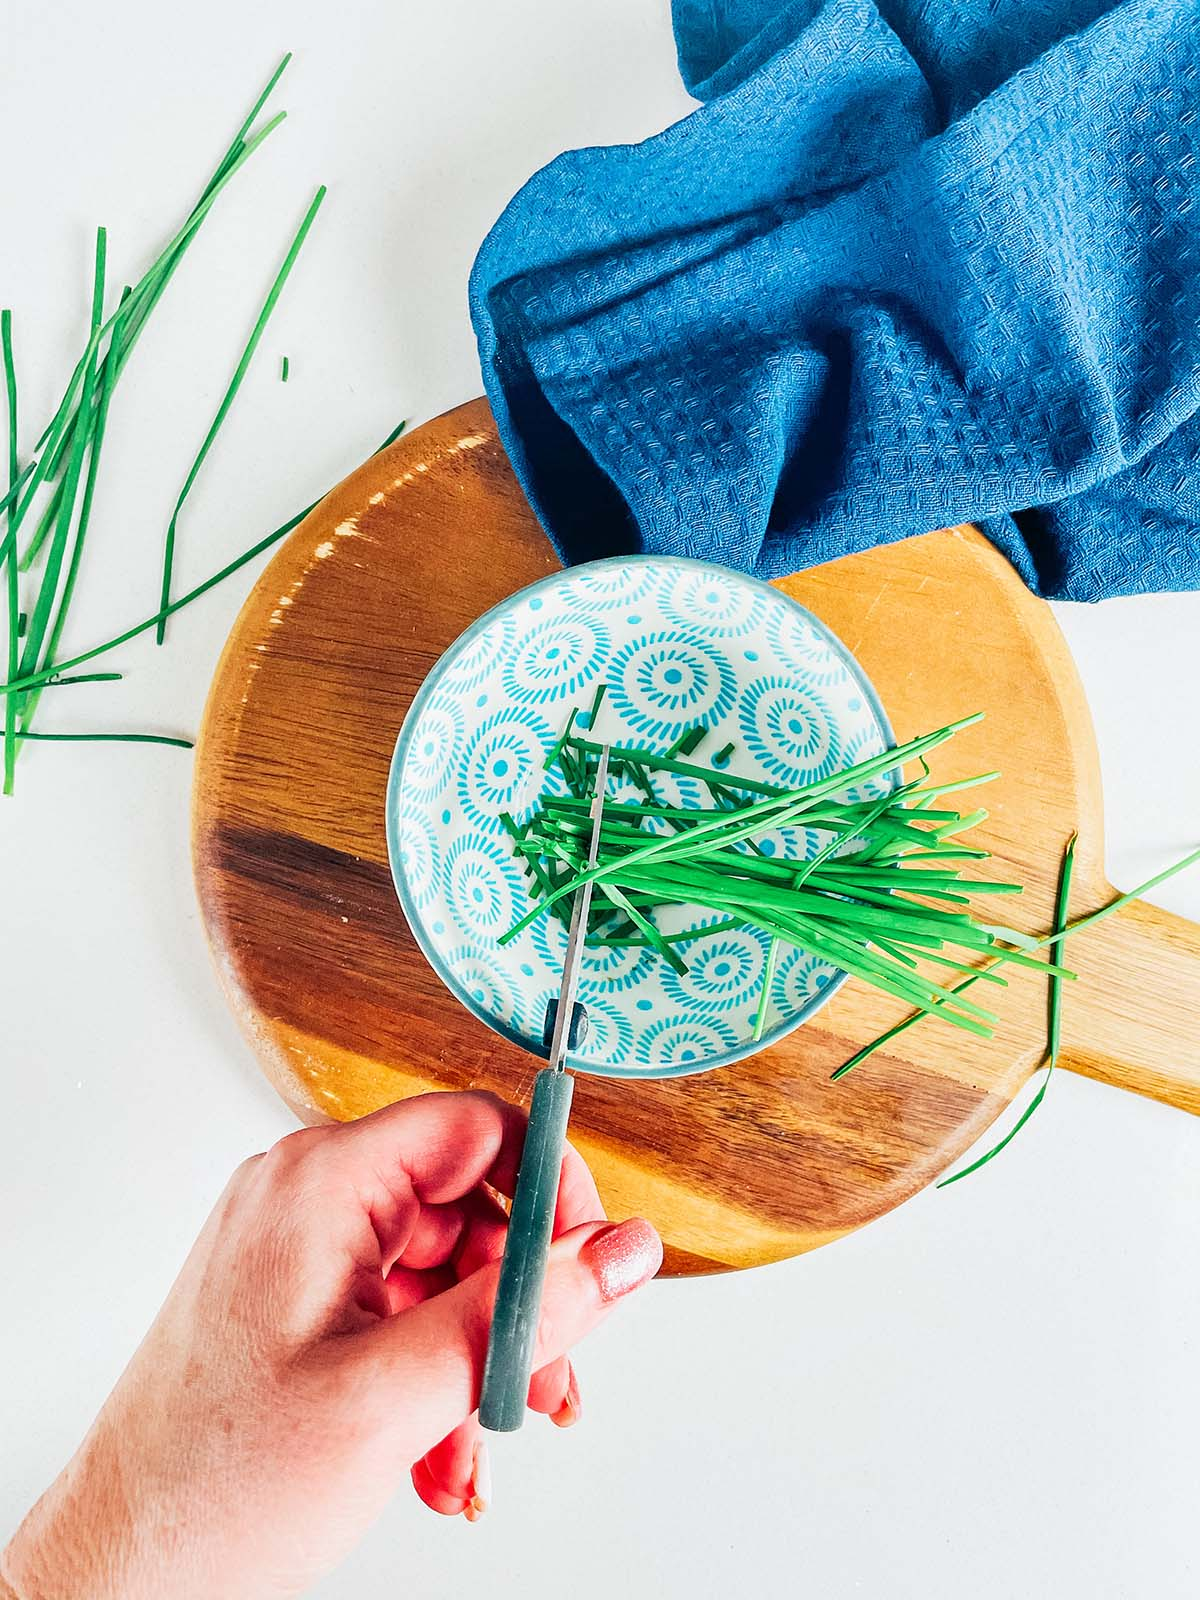 Chop the chives with scissors